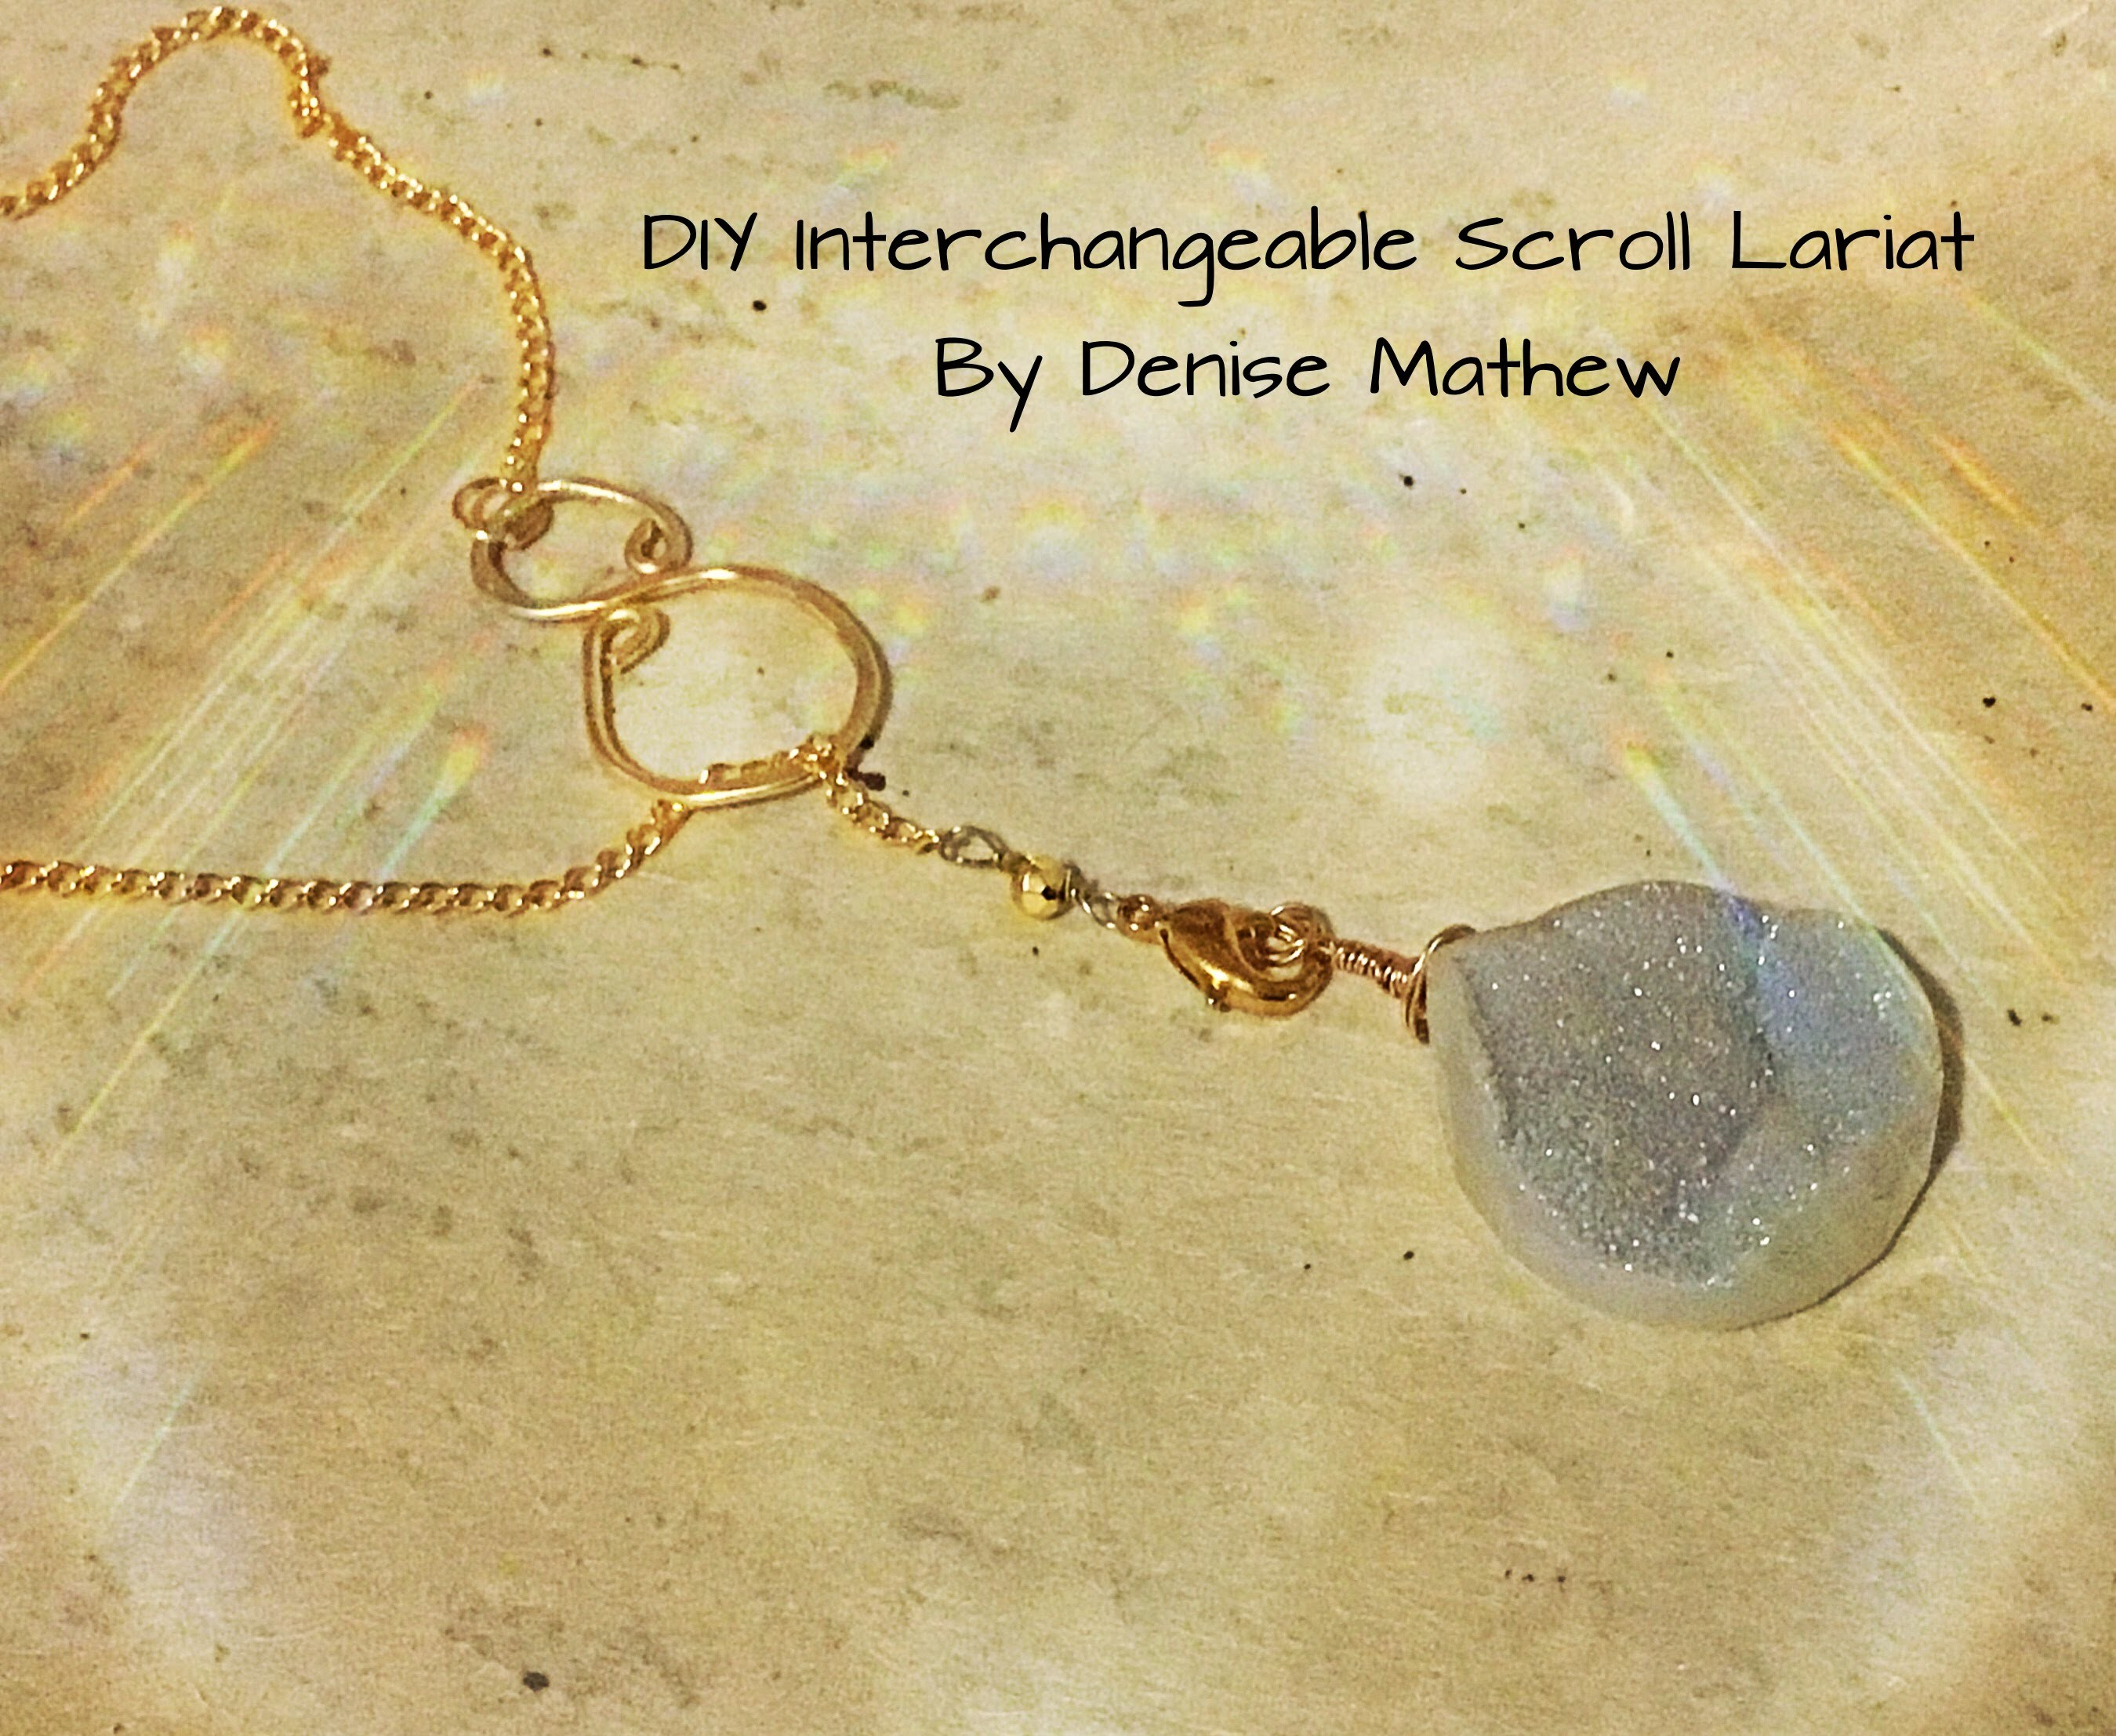 How to Make an Interchangeable Scroll Lariat by Denise Mathew